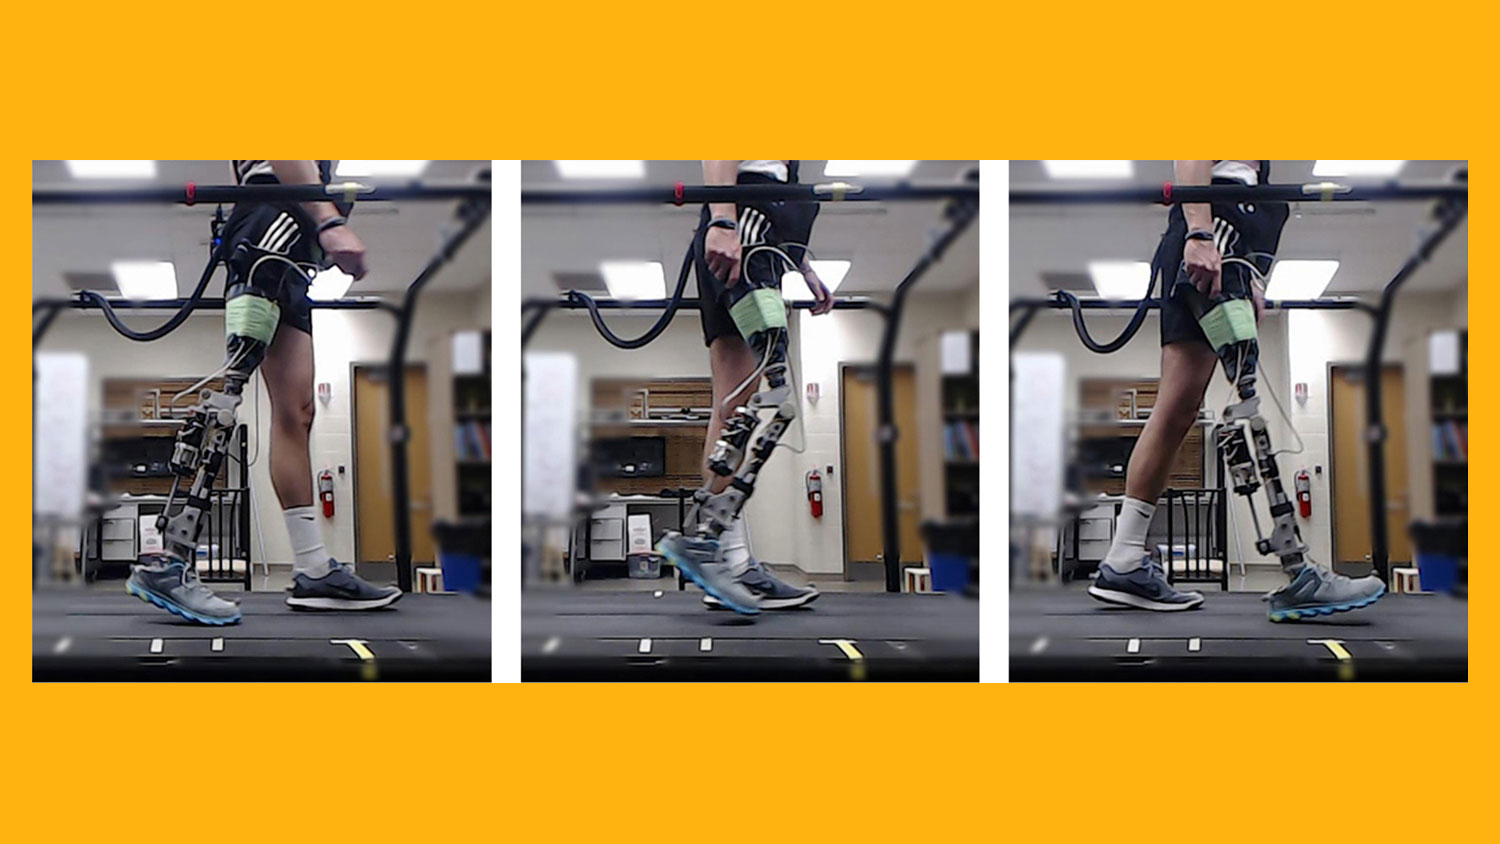 three frames showing a person's legs, one with a prosthetic, walking